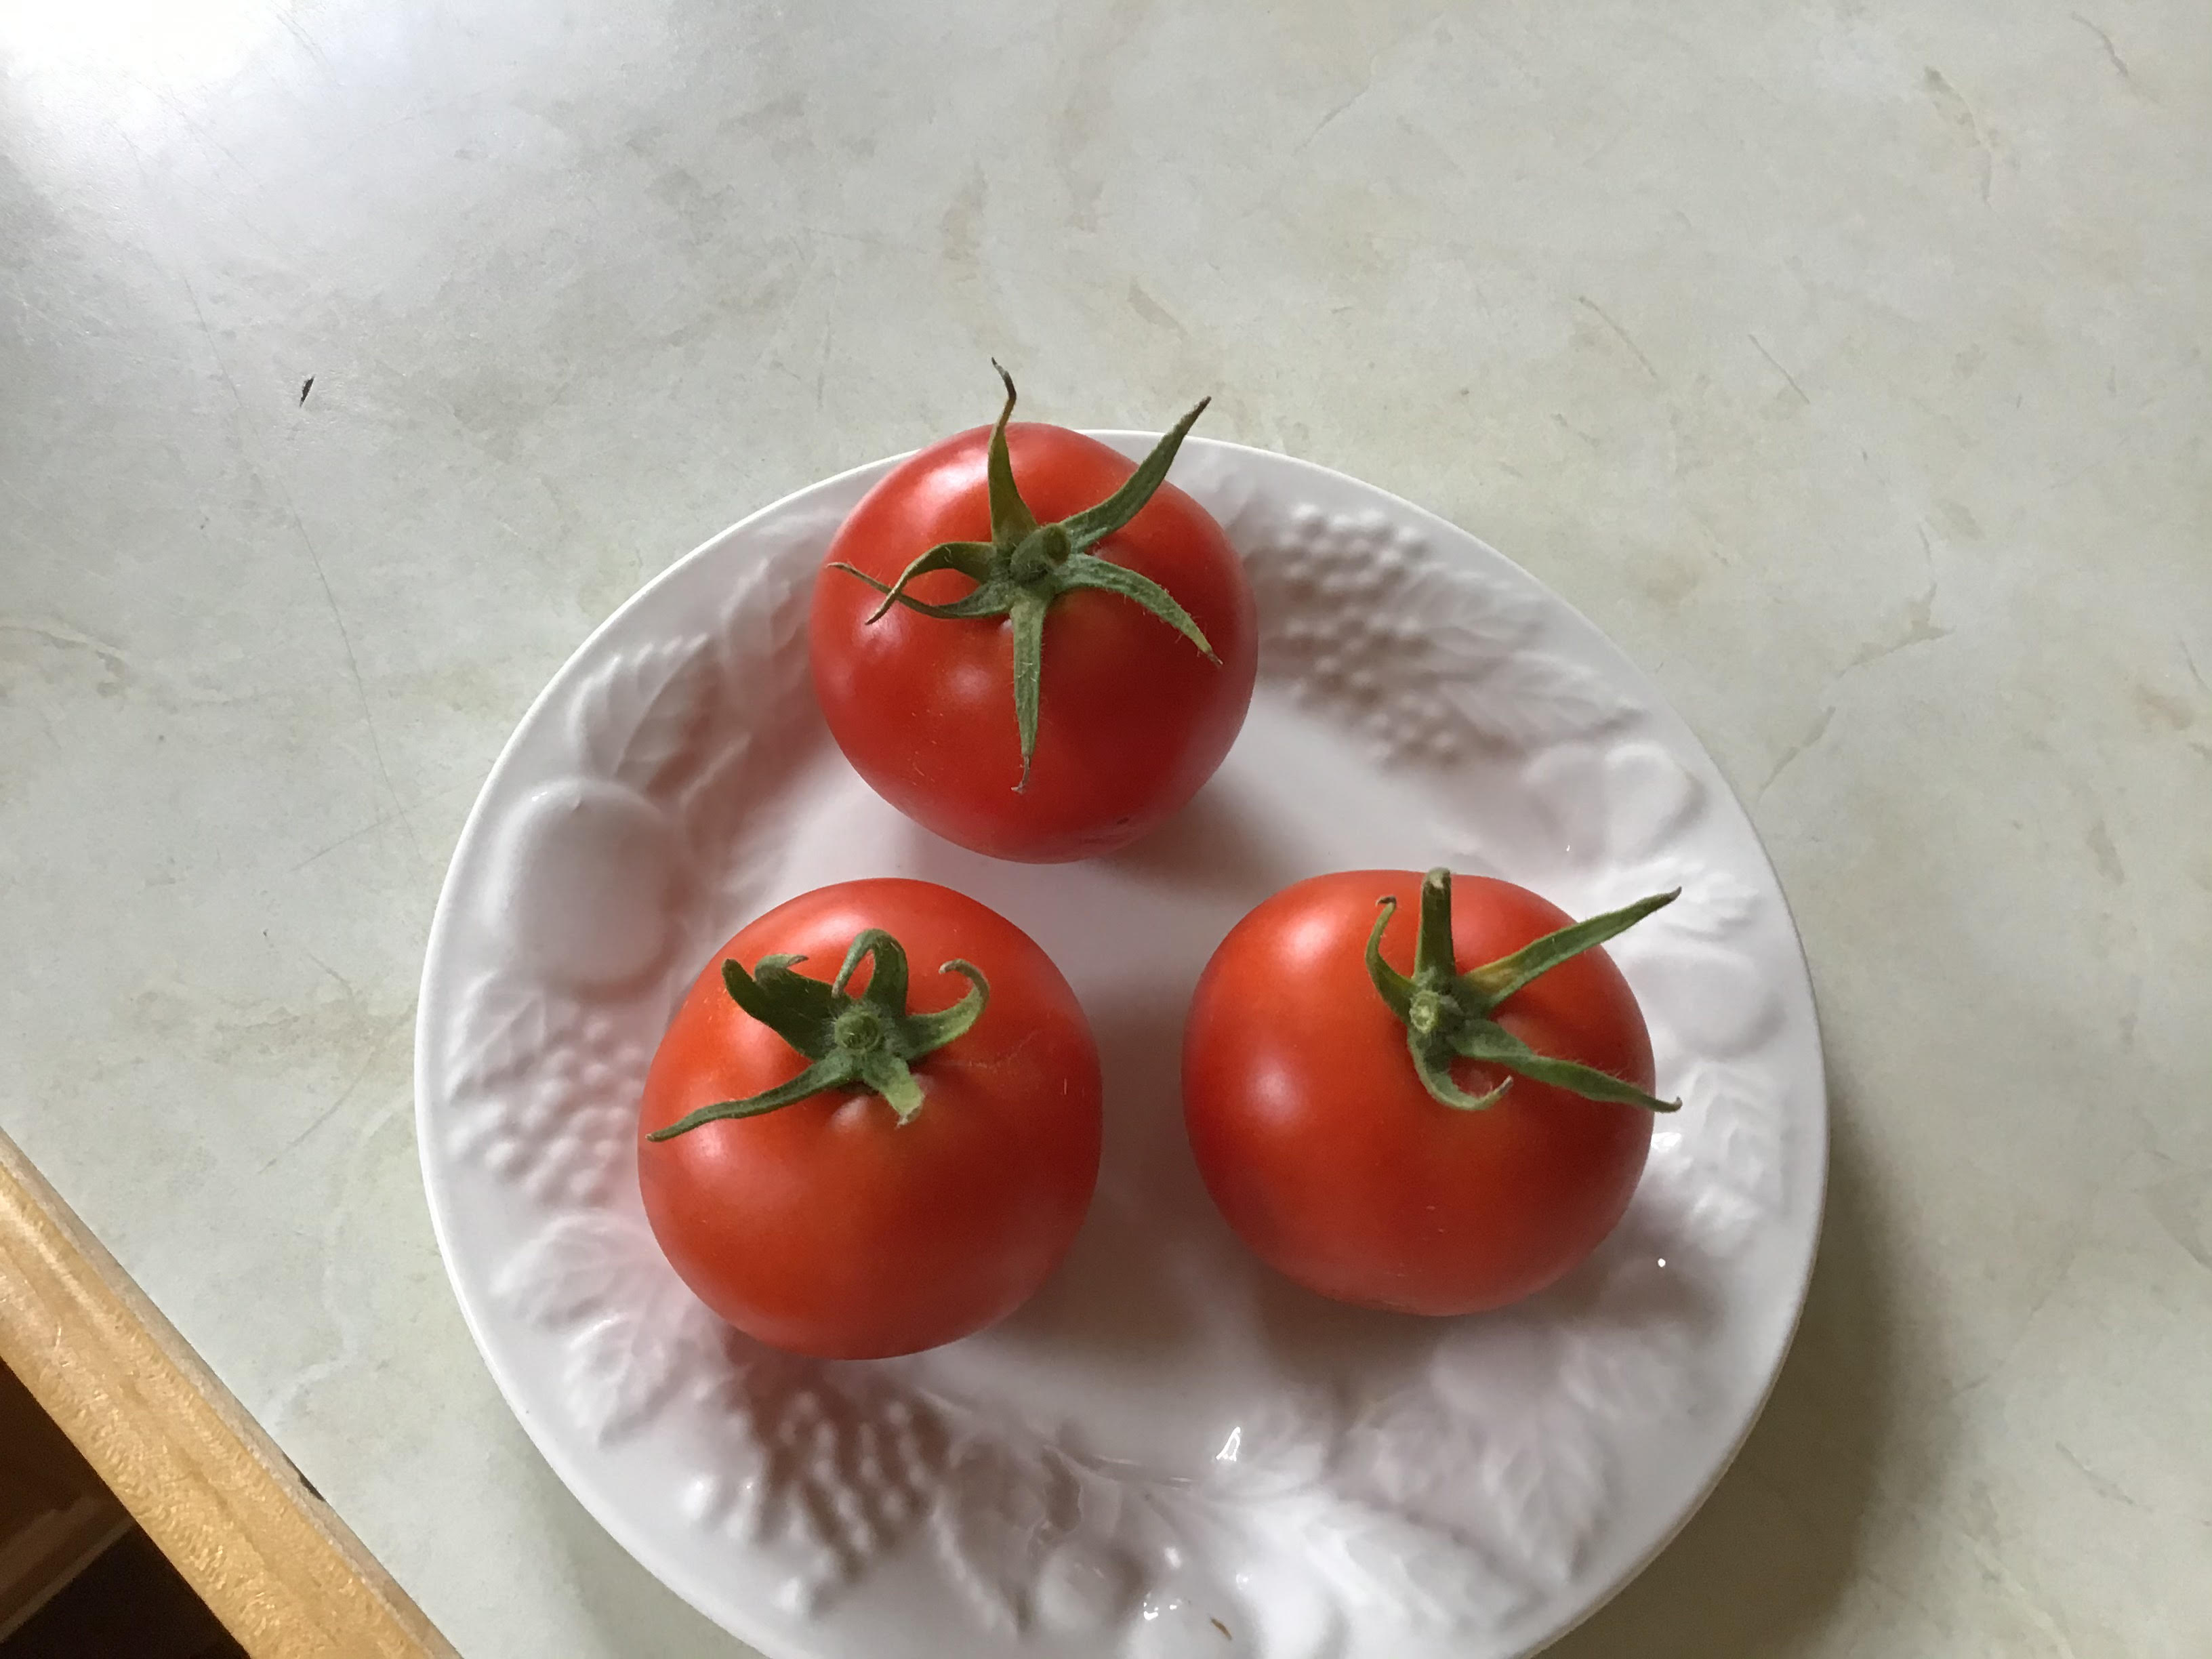 Tomatoes, three medium